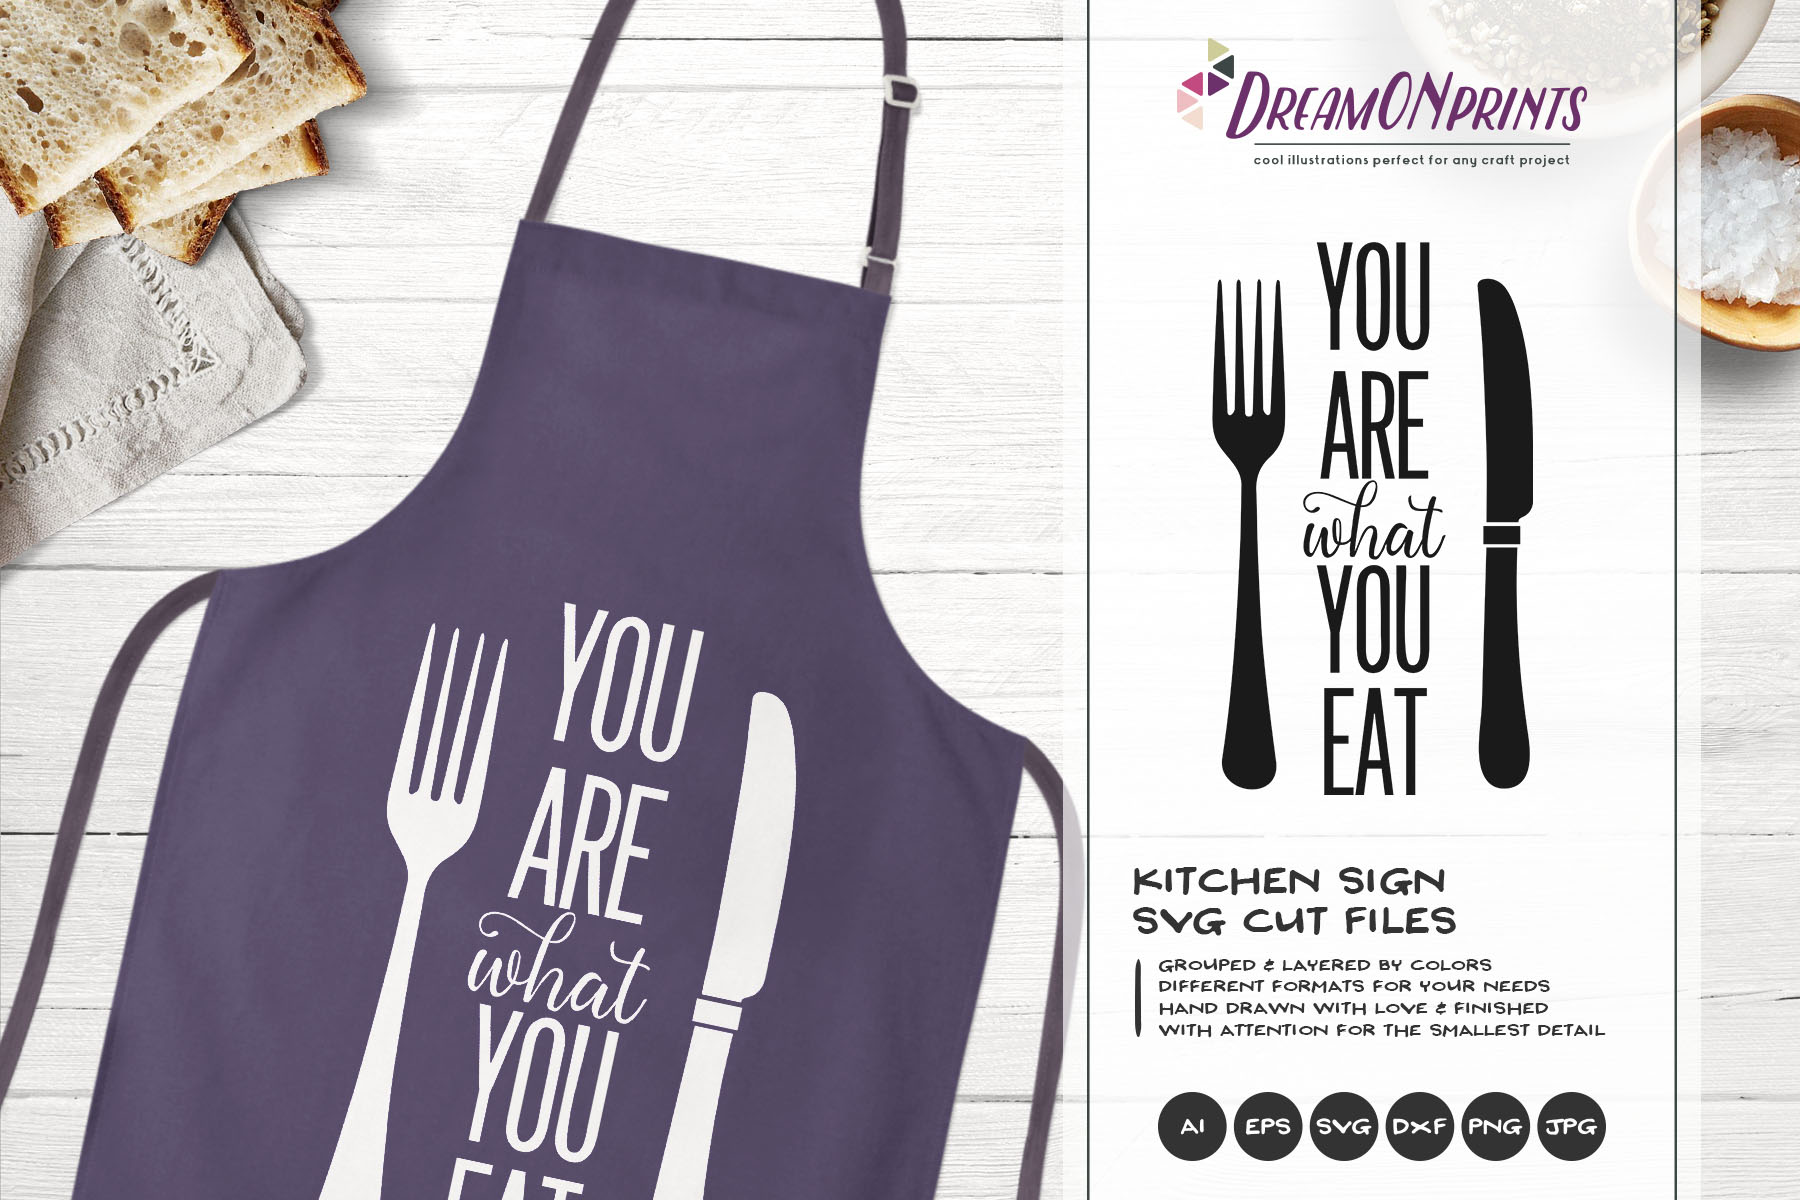 You Are what You Eat SVG - Fun Kitchen SVG Cut Files example image 1